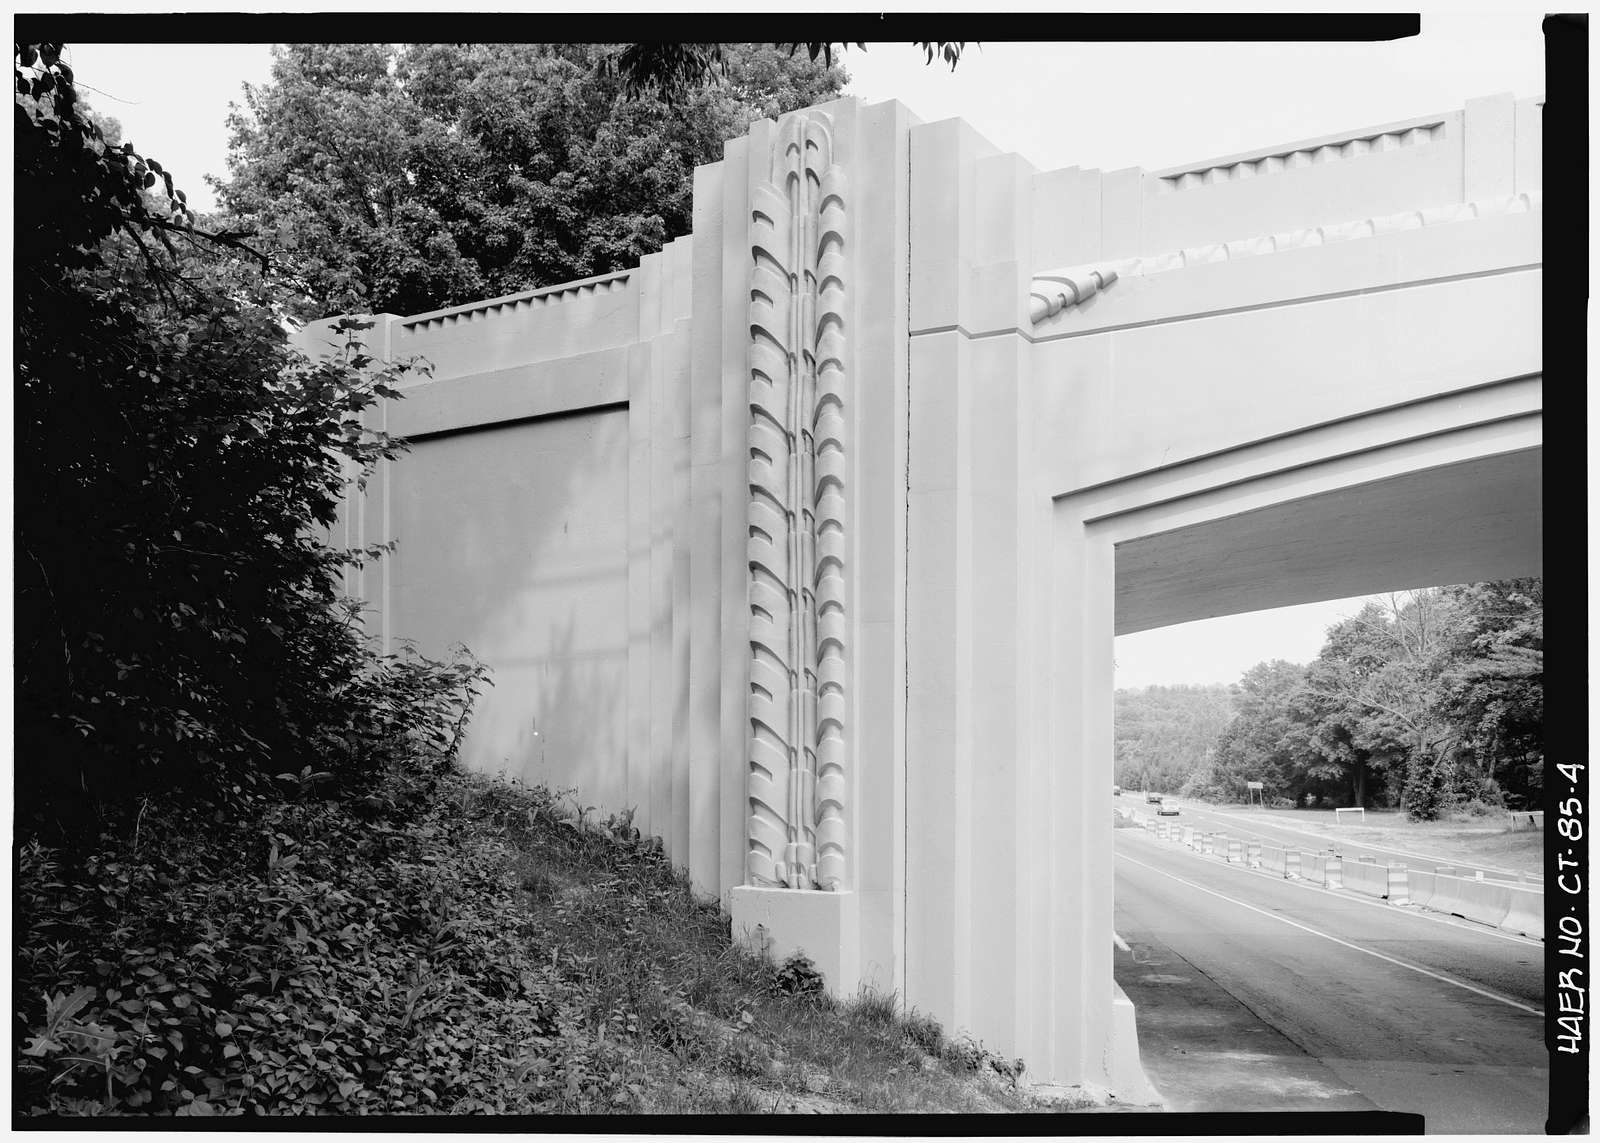 Merritt Parkway, White Oak Shade Road Bridge, Spanning Merritt Parkway, New Canaan, Fairfield County, CT